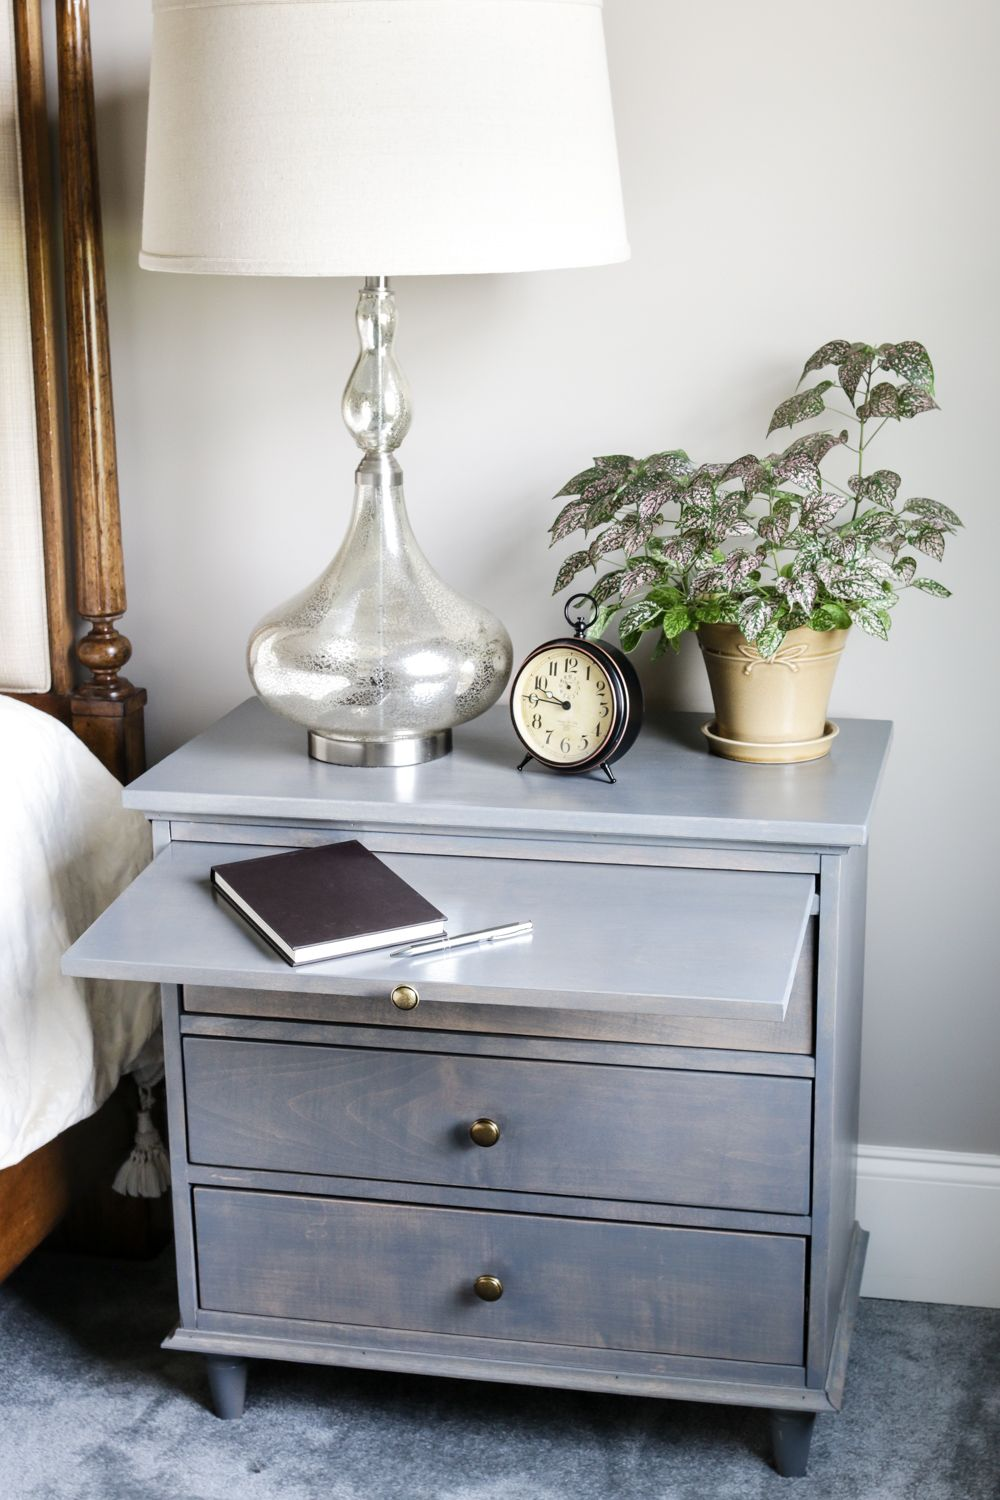 Nightstand W Charging Station Pullout Writing Tray Diy Nightstand Plans Nightstand Decor Bedroom Night Stands Diy Nightstand